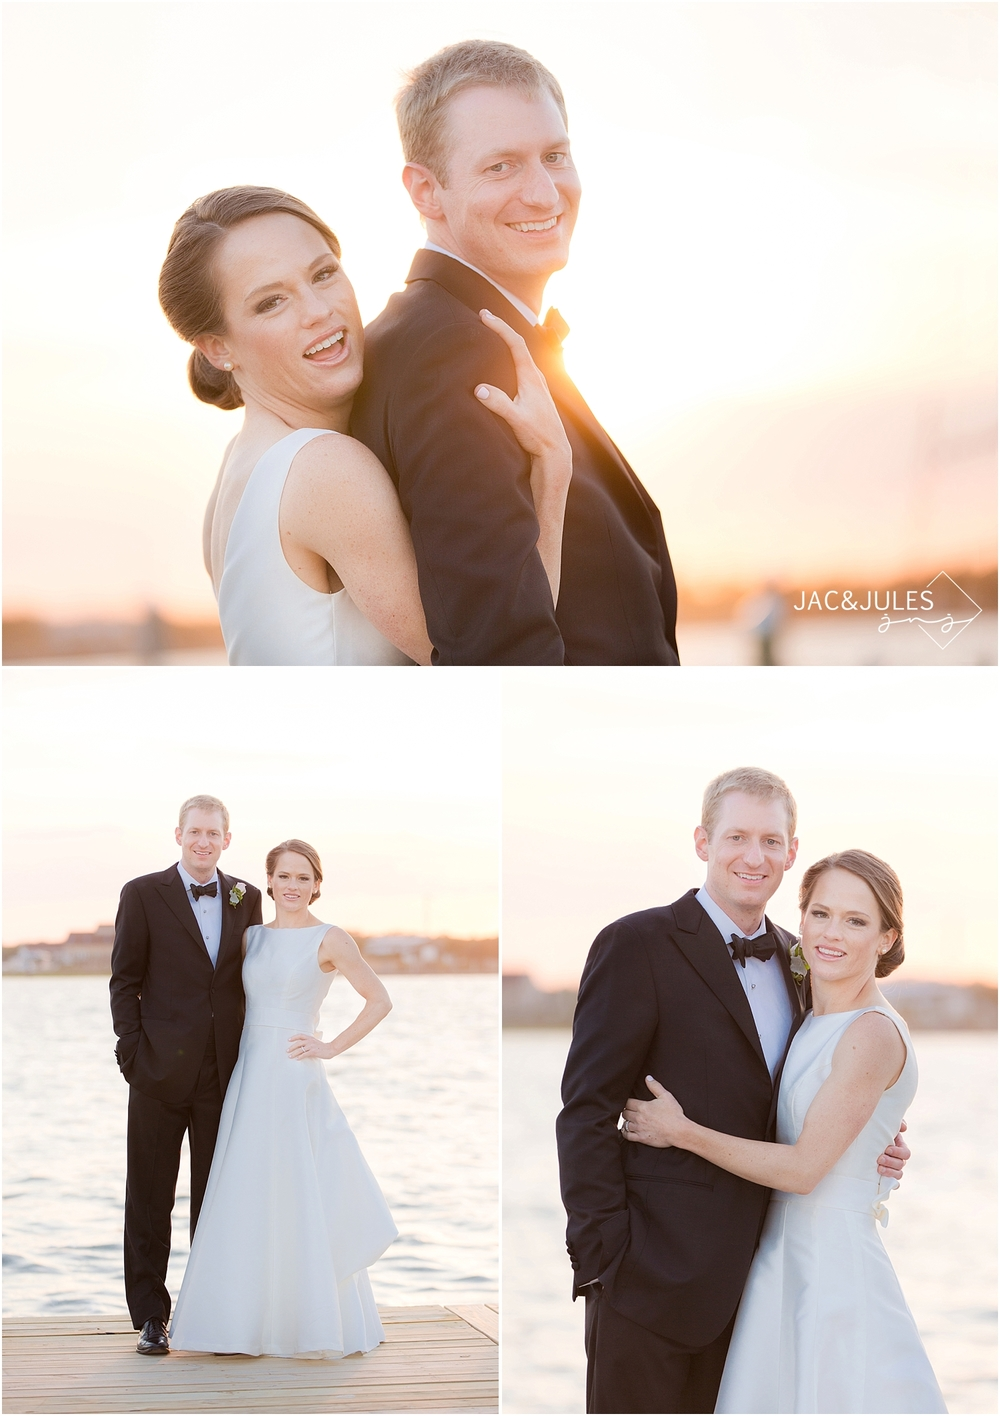 jacnjules photograph bride and groom at sunset at mantoloking yacht club in nj